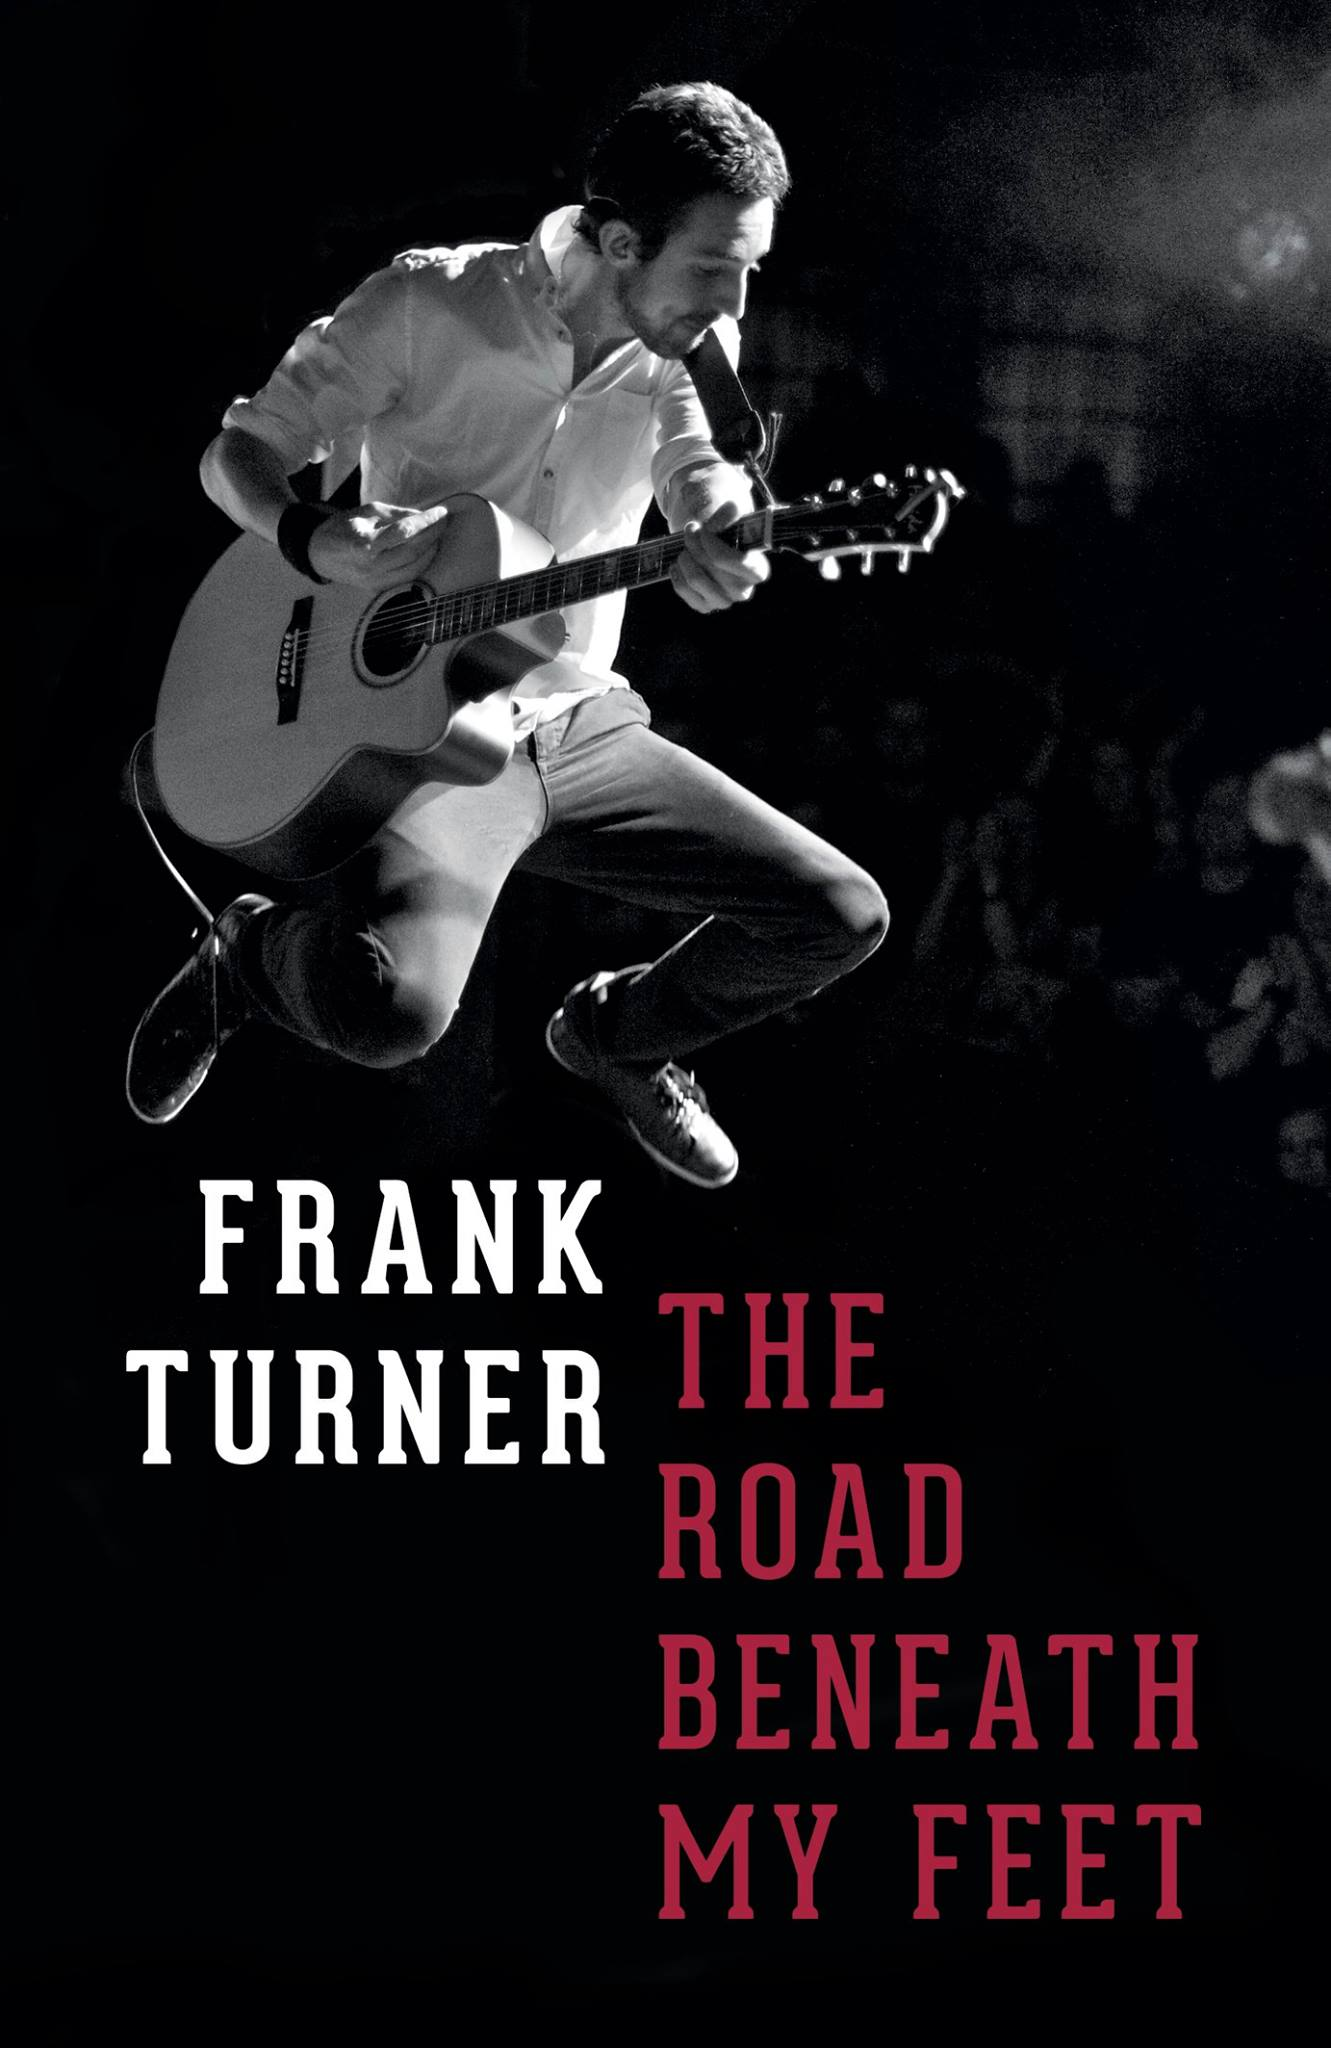 Frank Turner The Road Beneath My Feet Cover Image